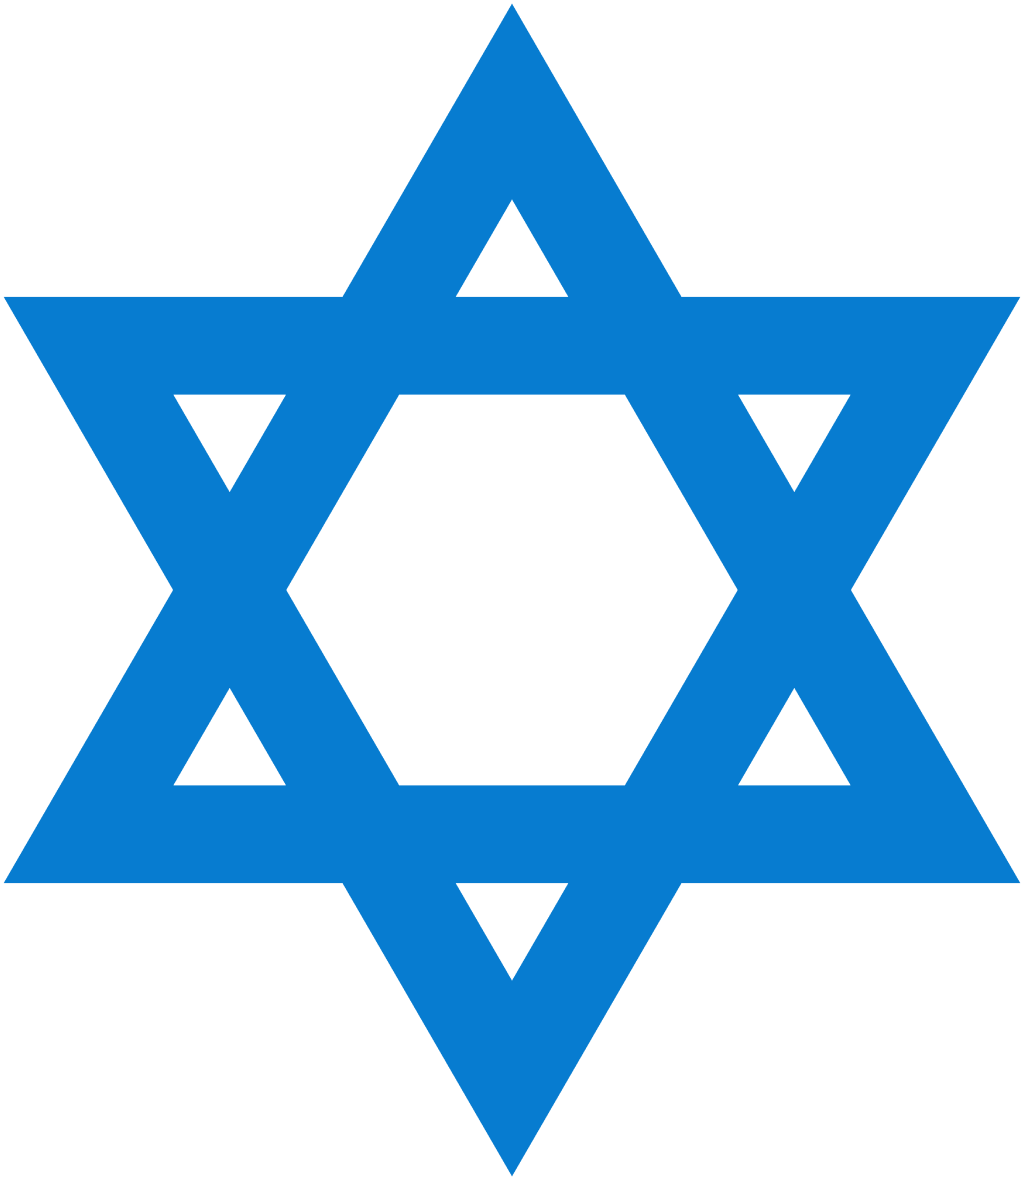 Fileisraeli blue star of davidg wikimedia commons fileisraeli blue star of davidg biocorpaavc Choice Image